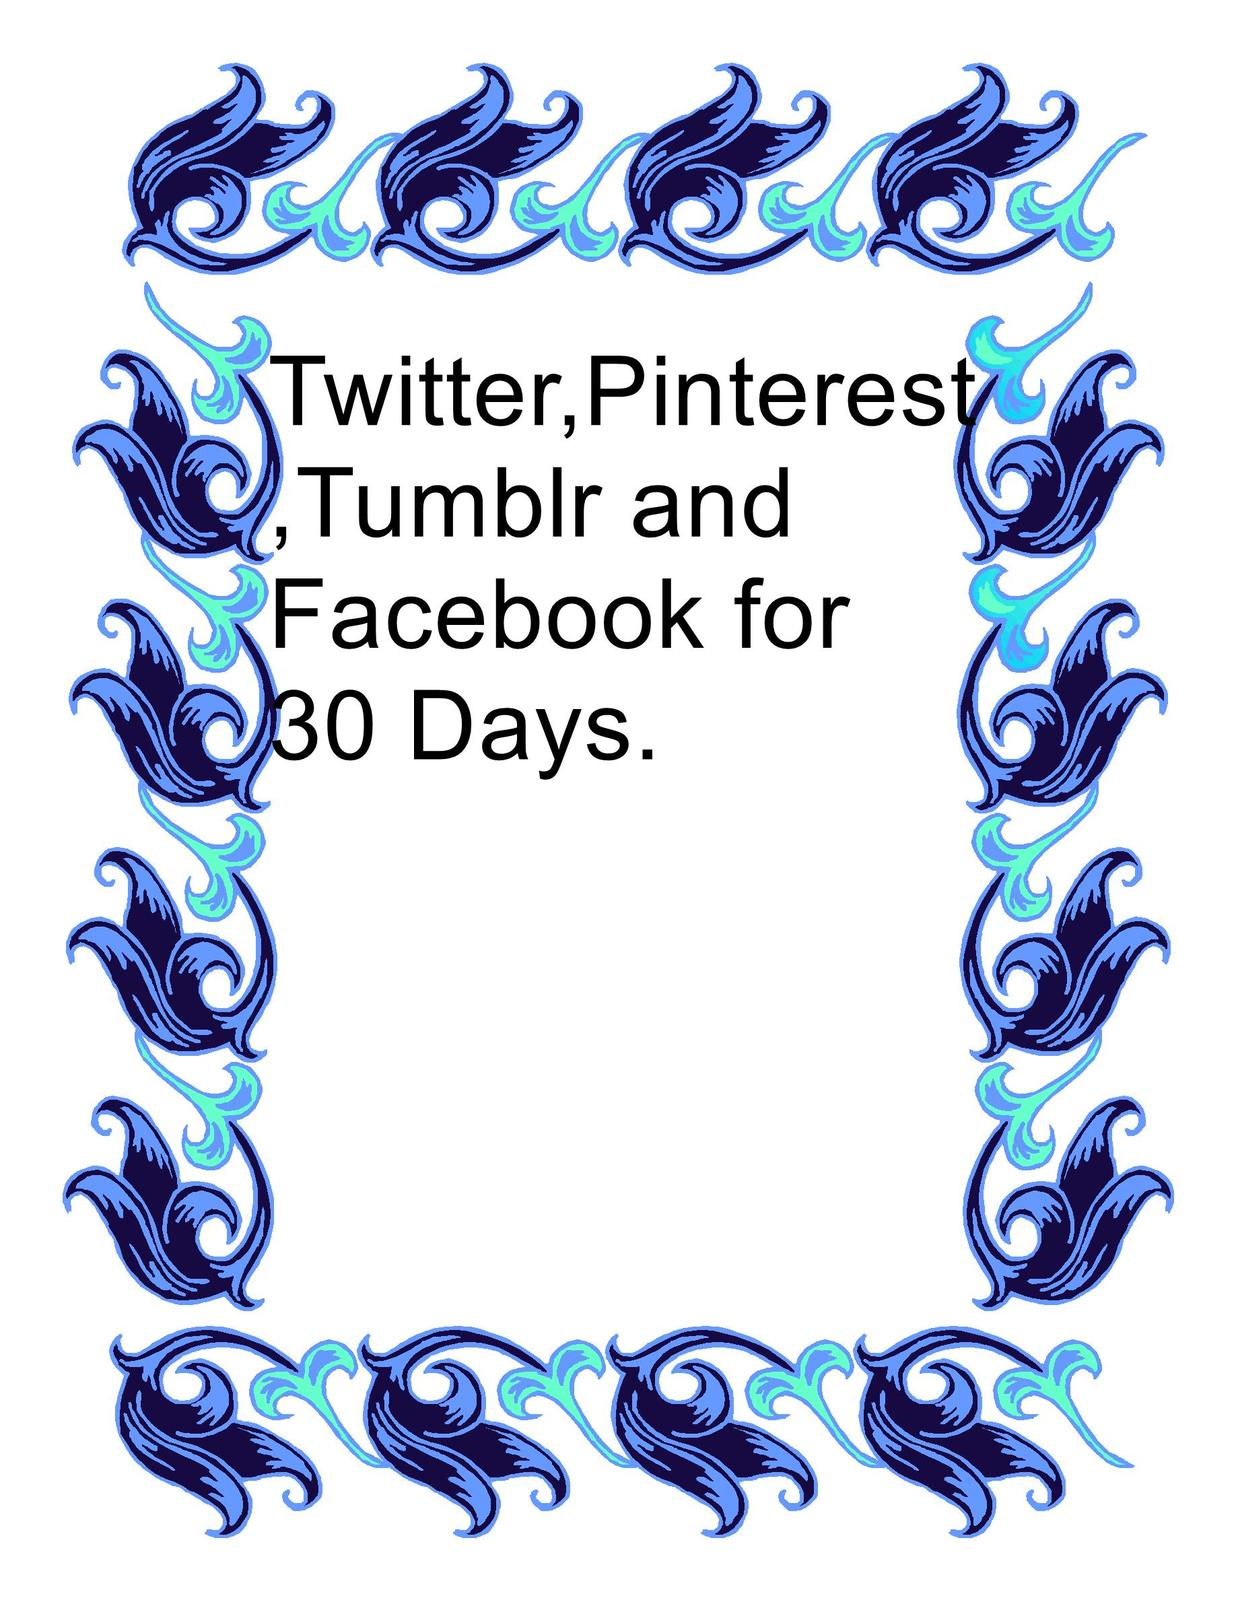 Twitter pinterest tumblr and facebook for 30 days